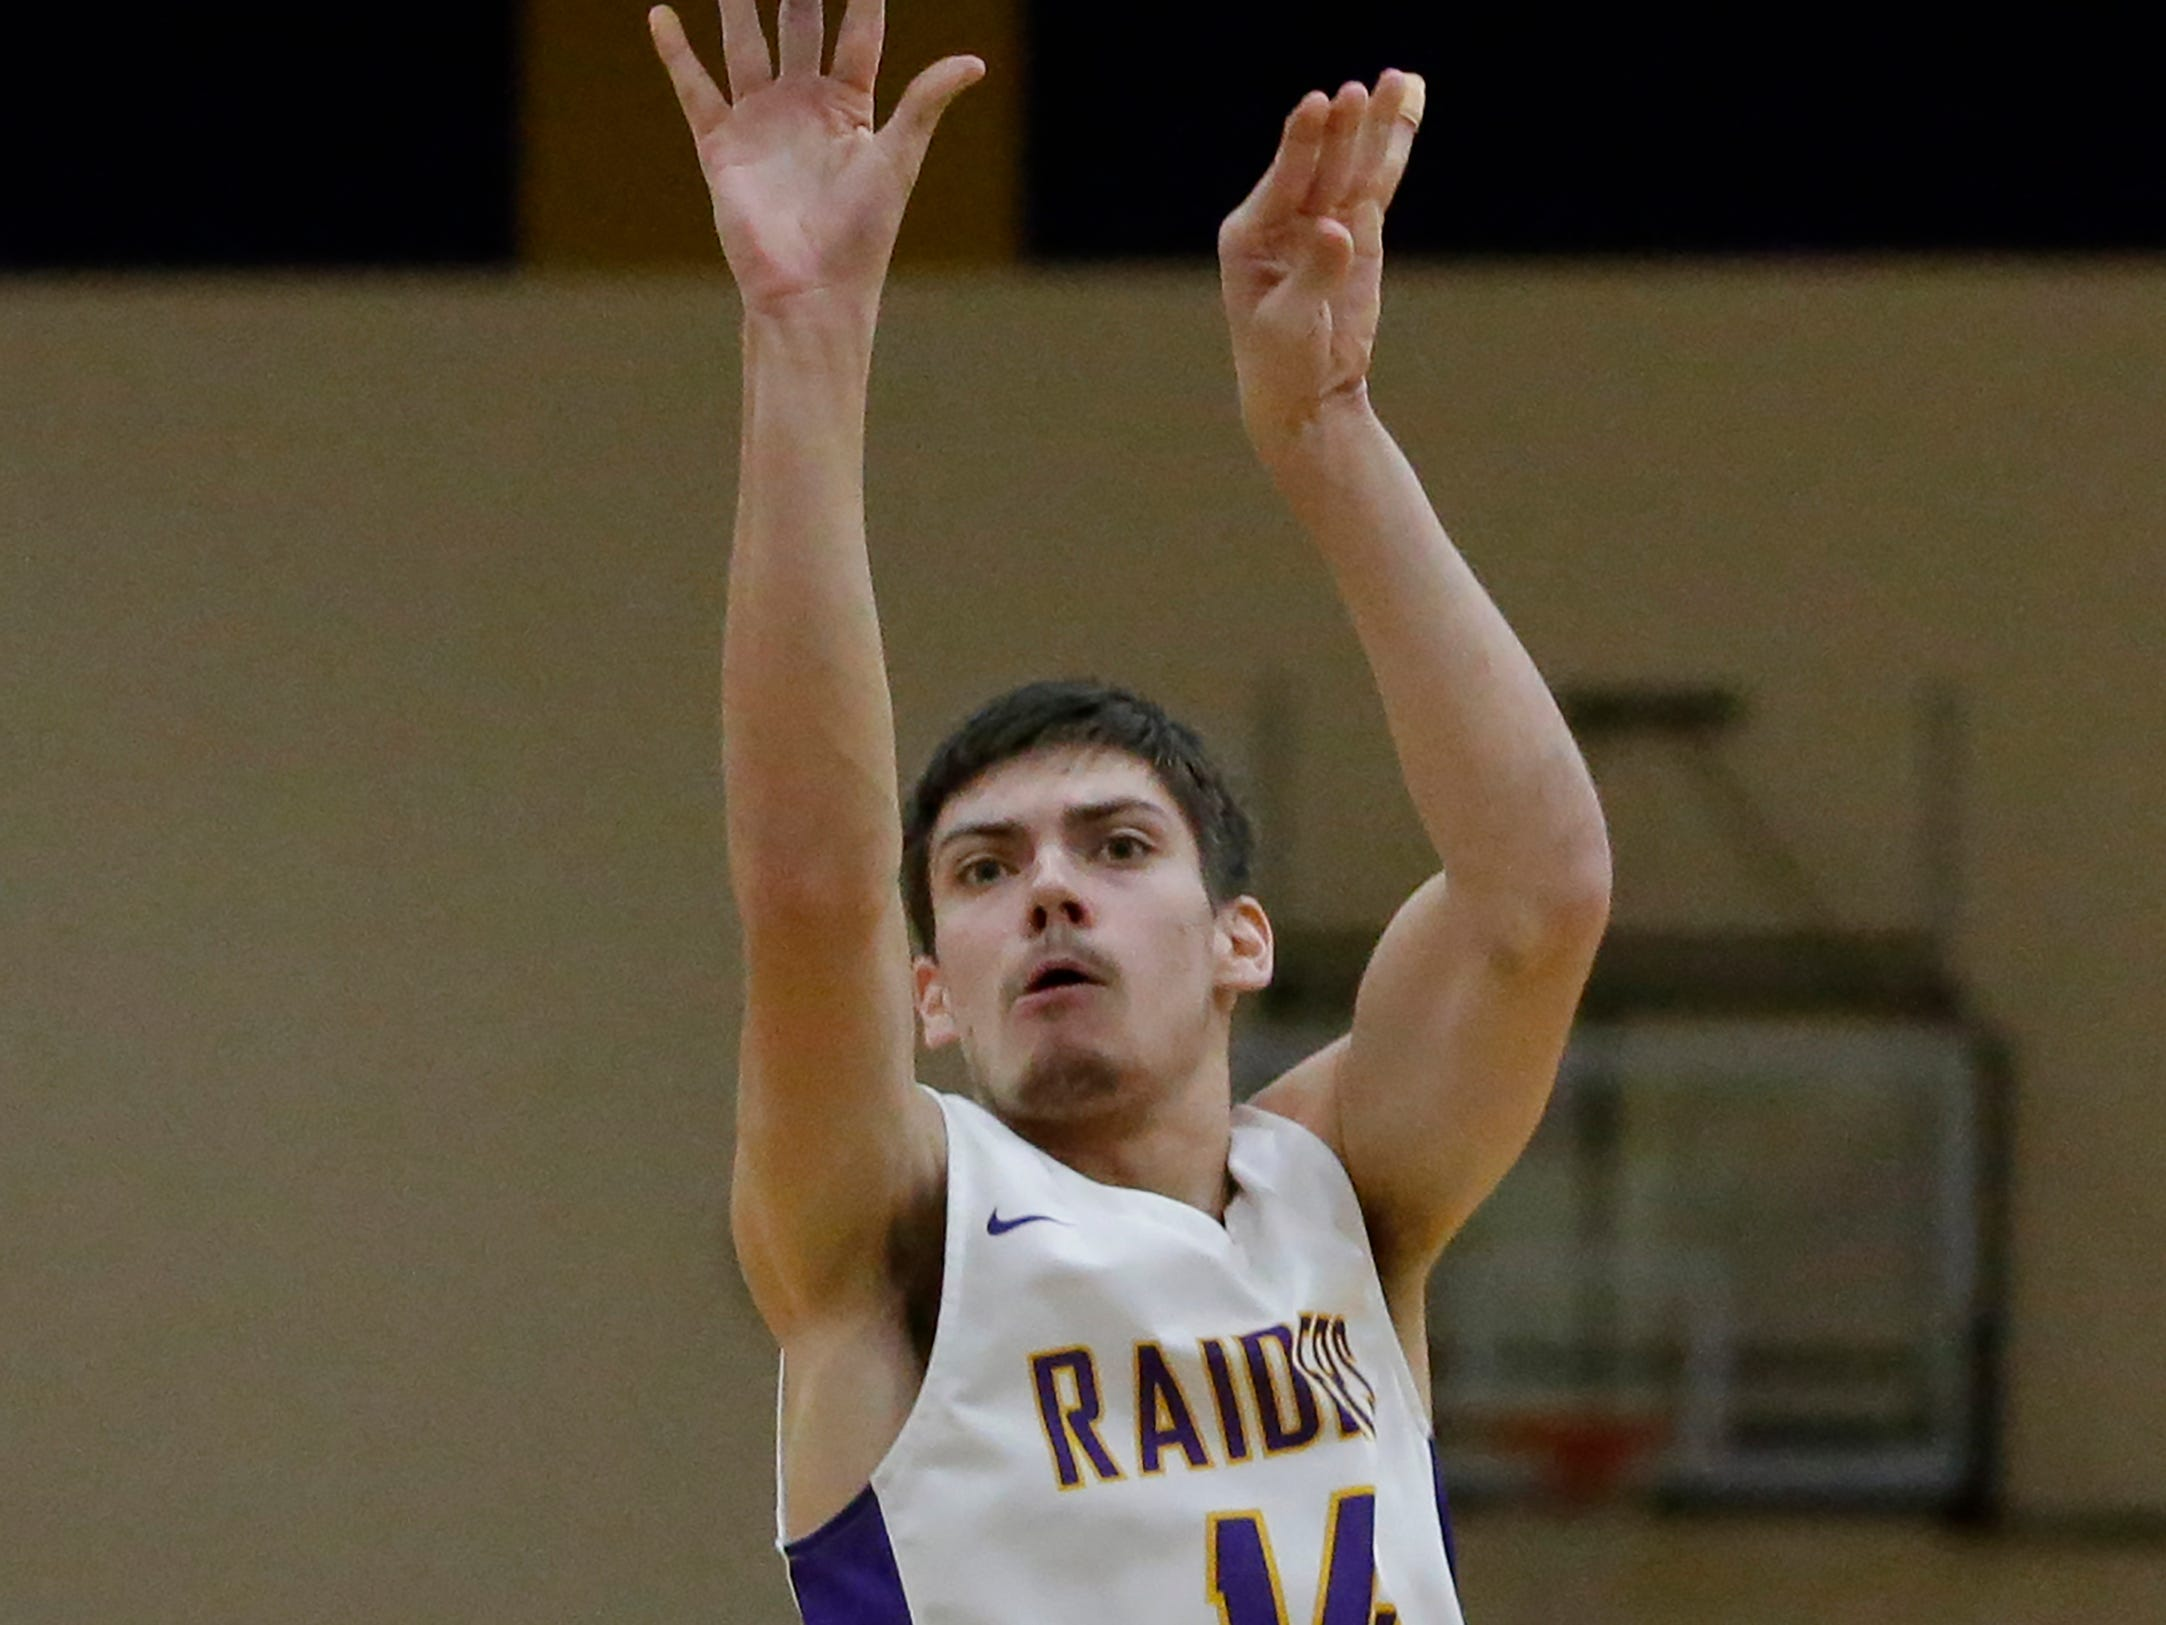 Two Rivers' Trent Van Ess shoots against Green Bay NEW Lutheran at Two Rivers High School Tuesday, January 8, 2019, in Two Rivers, Wis. Joshua Clark/USA TODAY NETWORK-Wisconsin